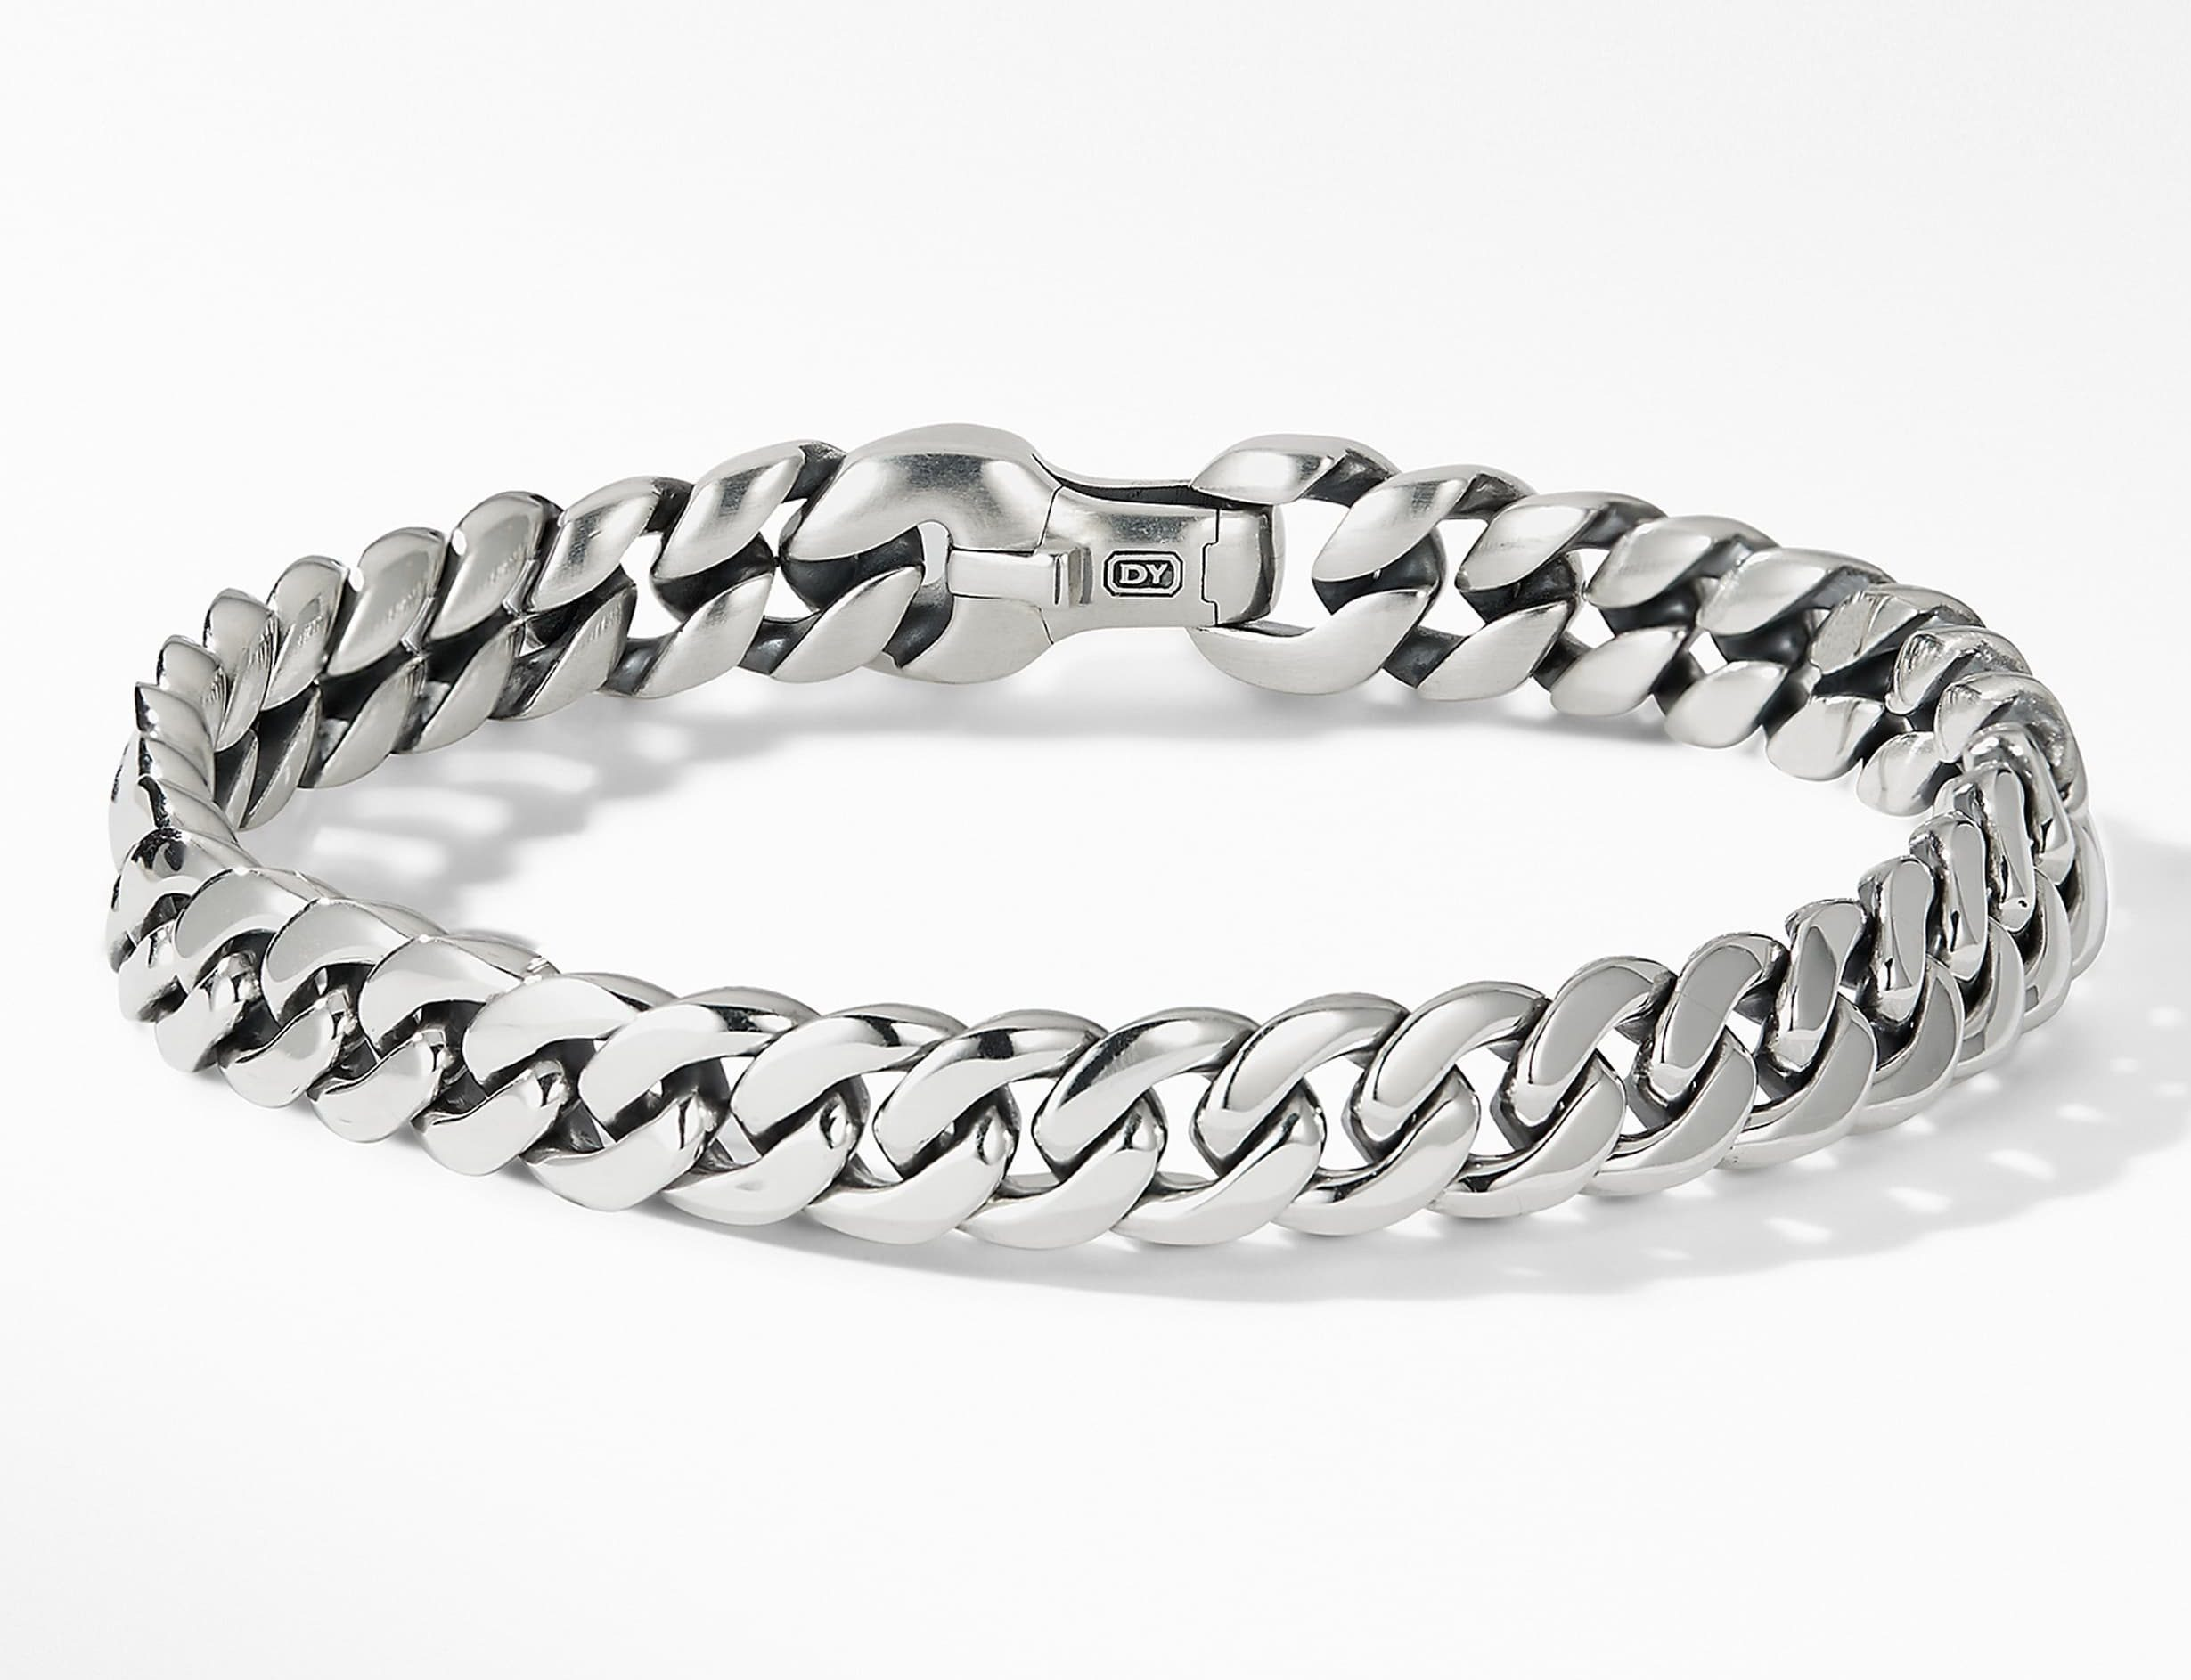 David Yurman Curb Chain Bracelet for men